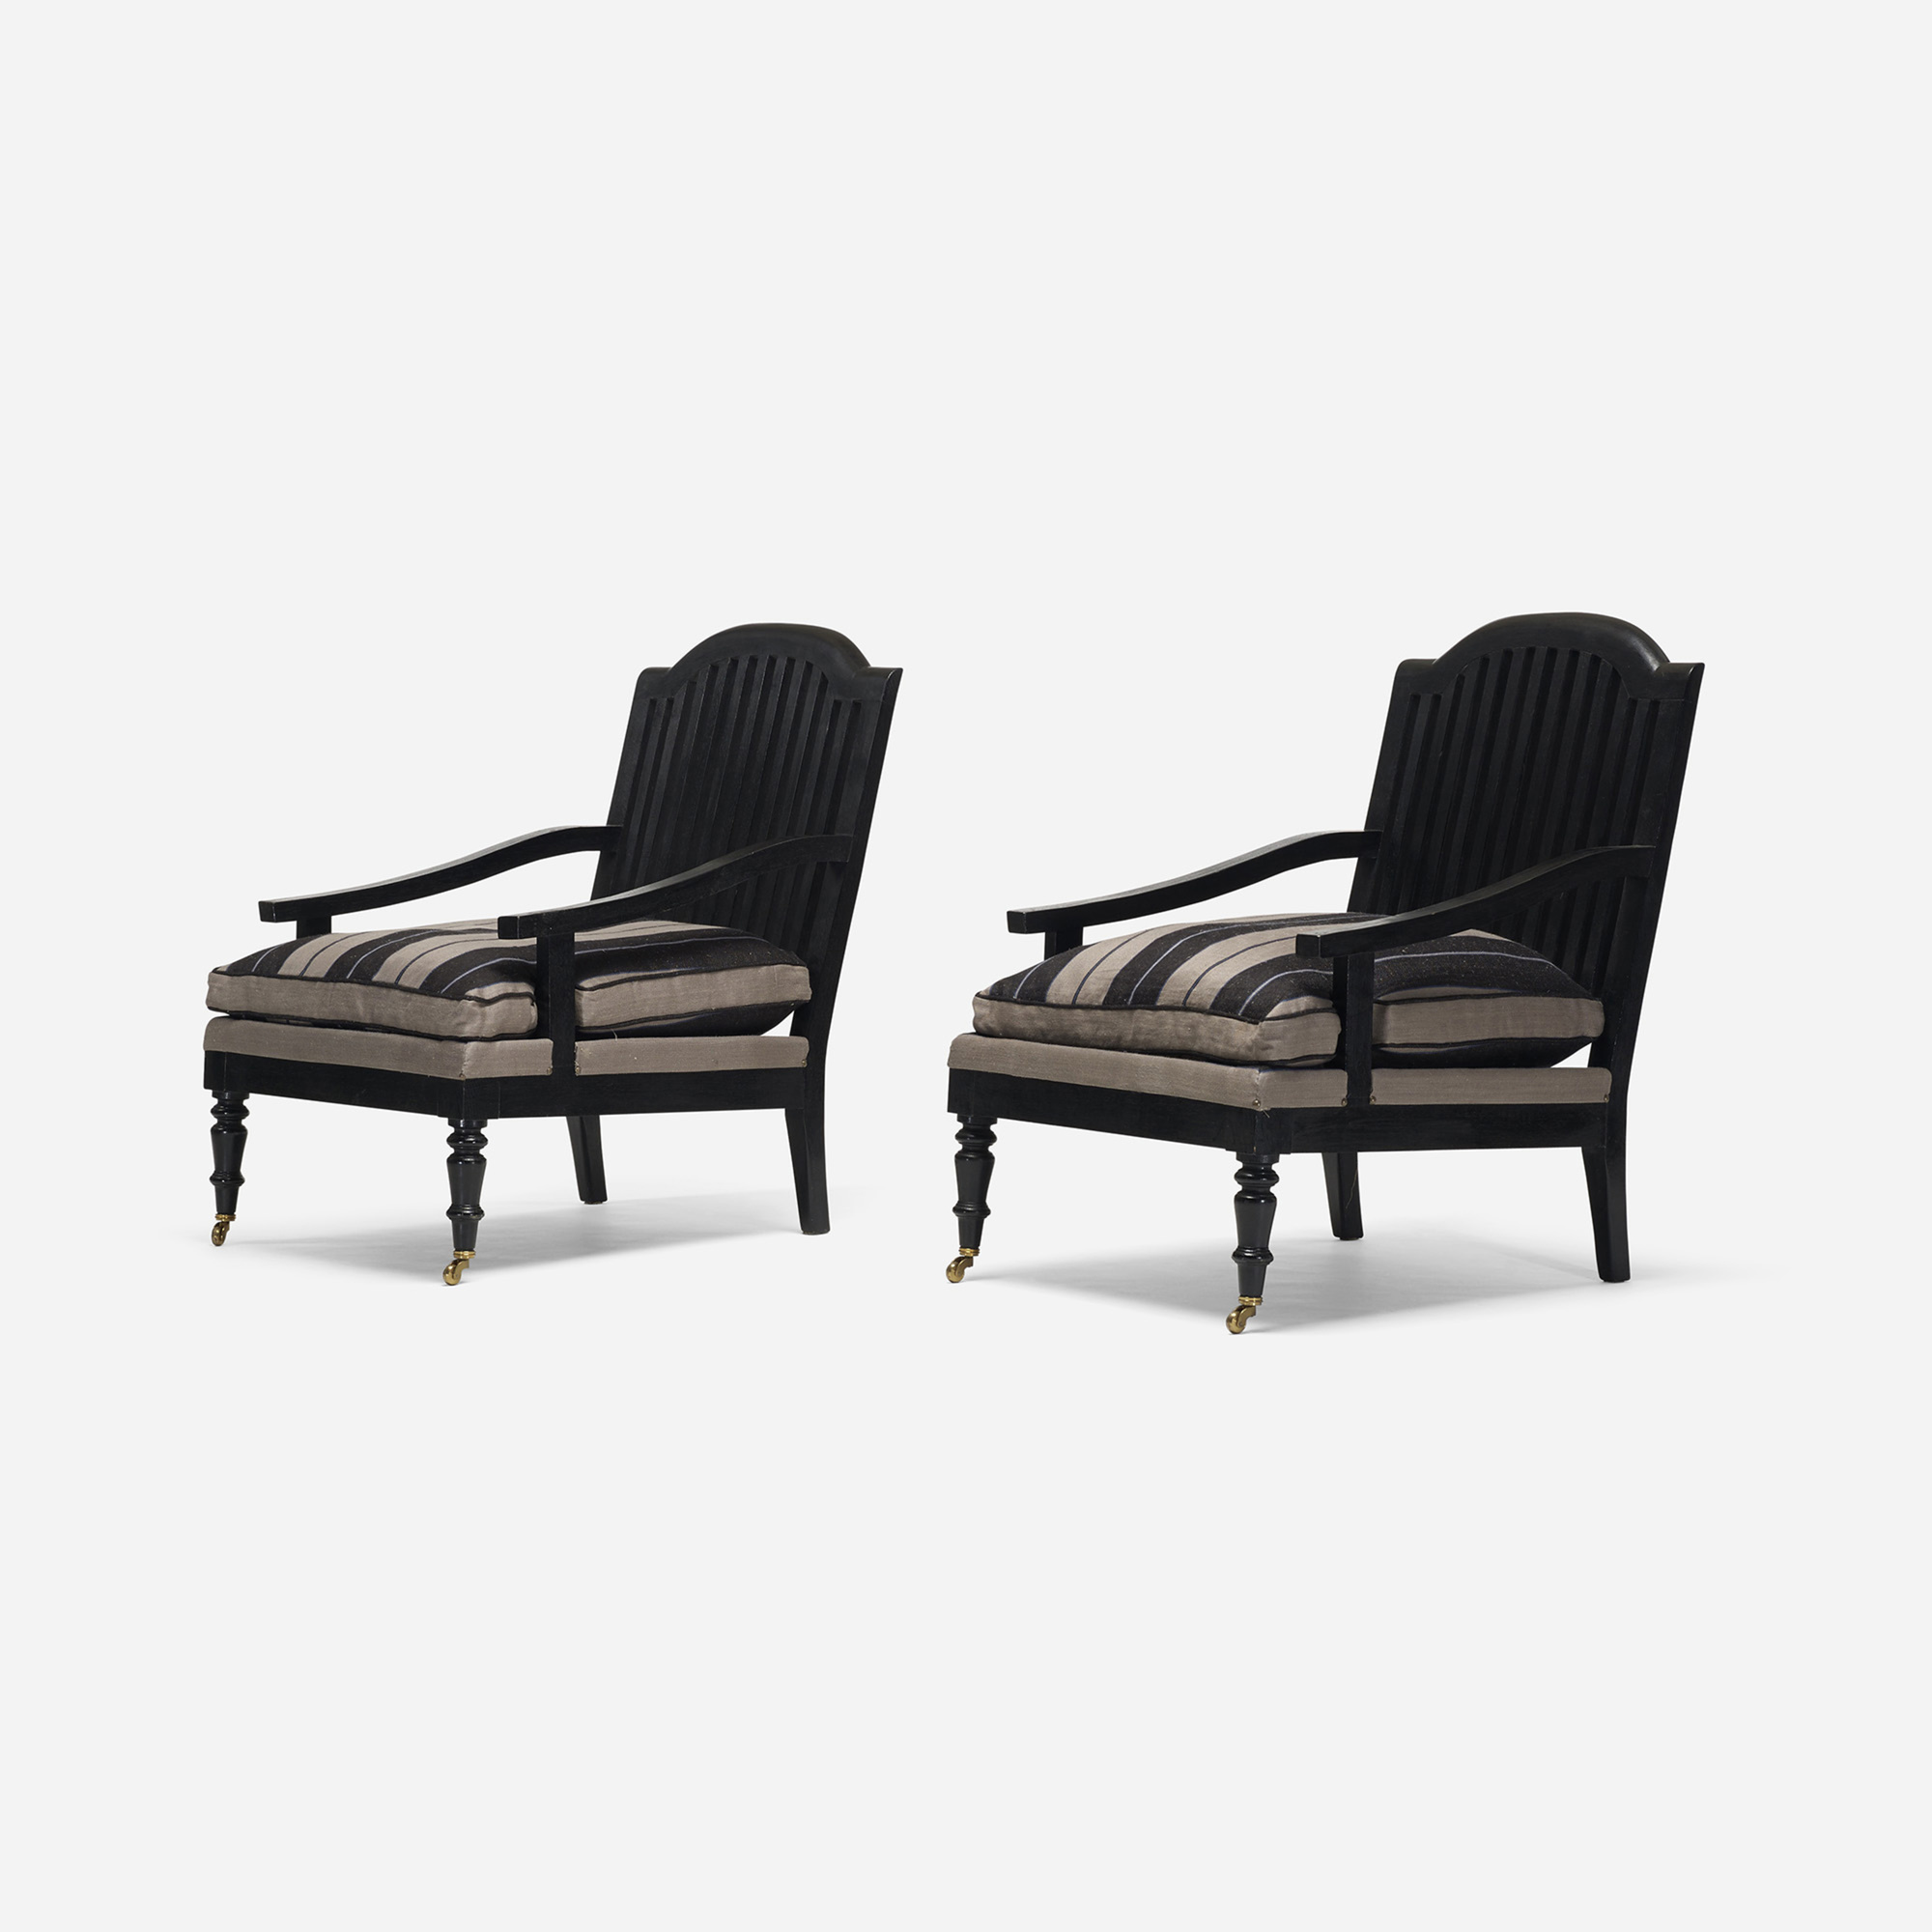 119: American / lounge chairs, pair (2 of 3)